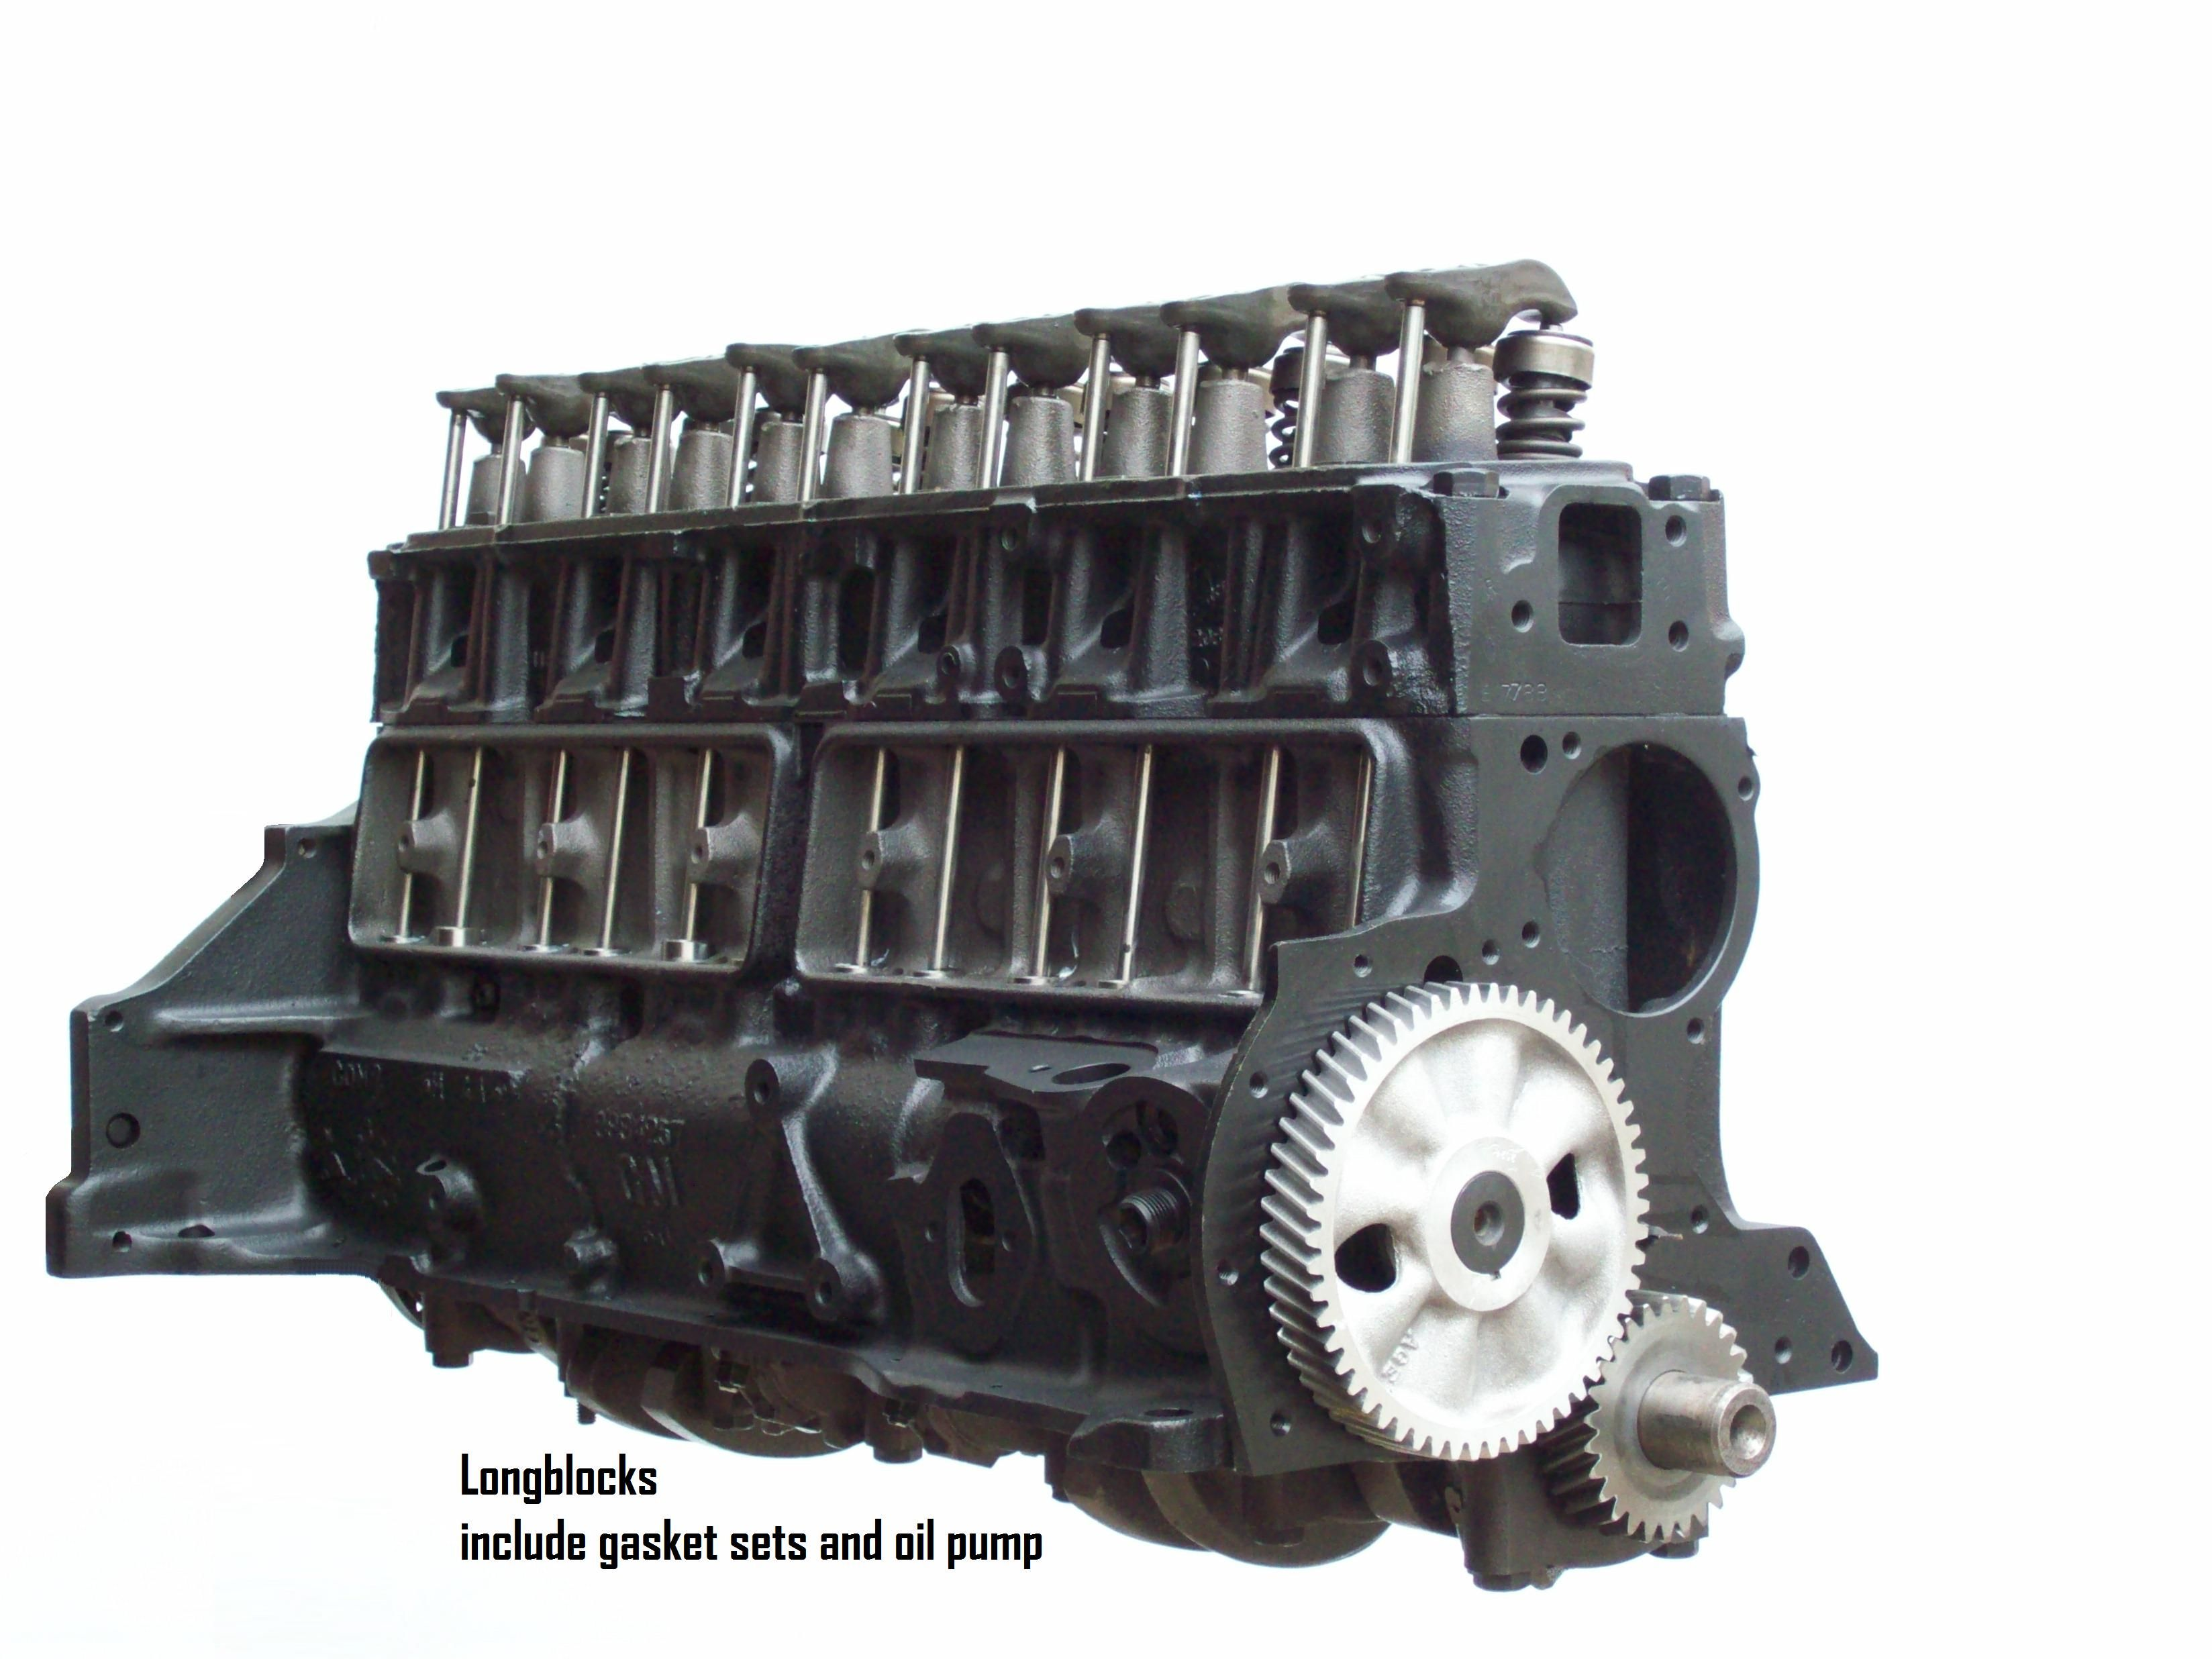 remanufactured engines gallery engine land landrover rover range